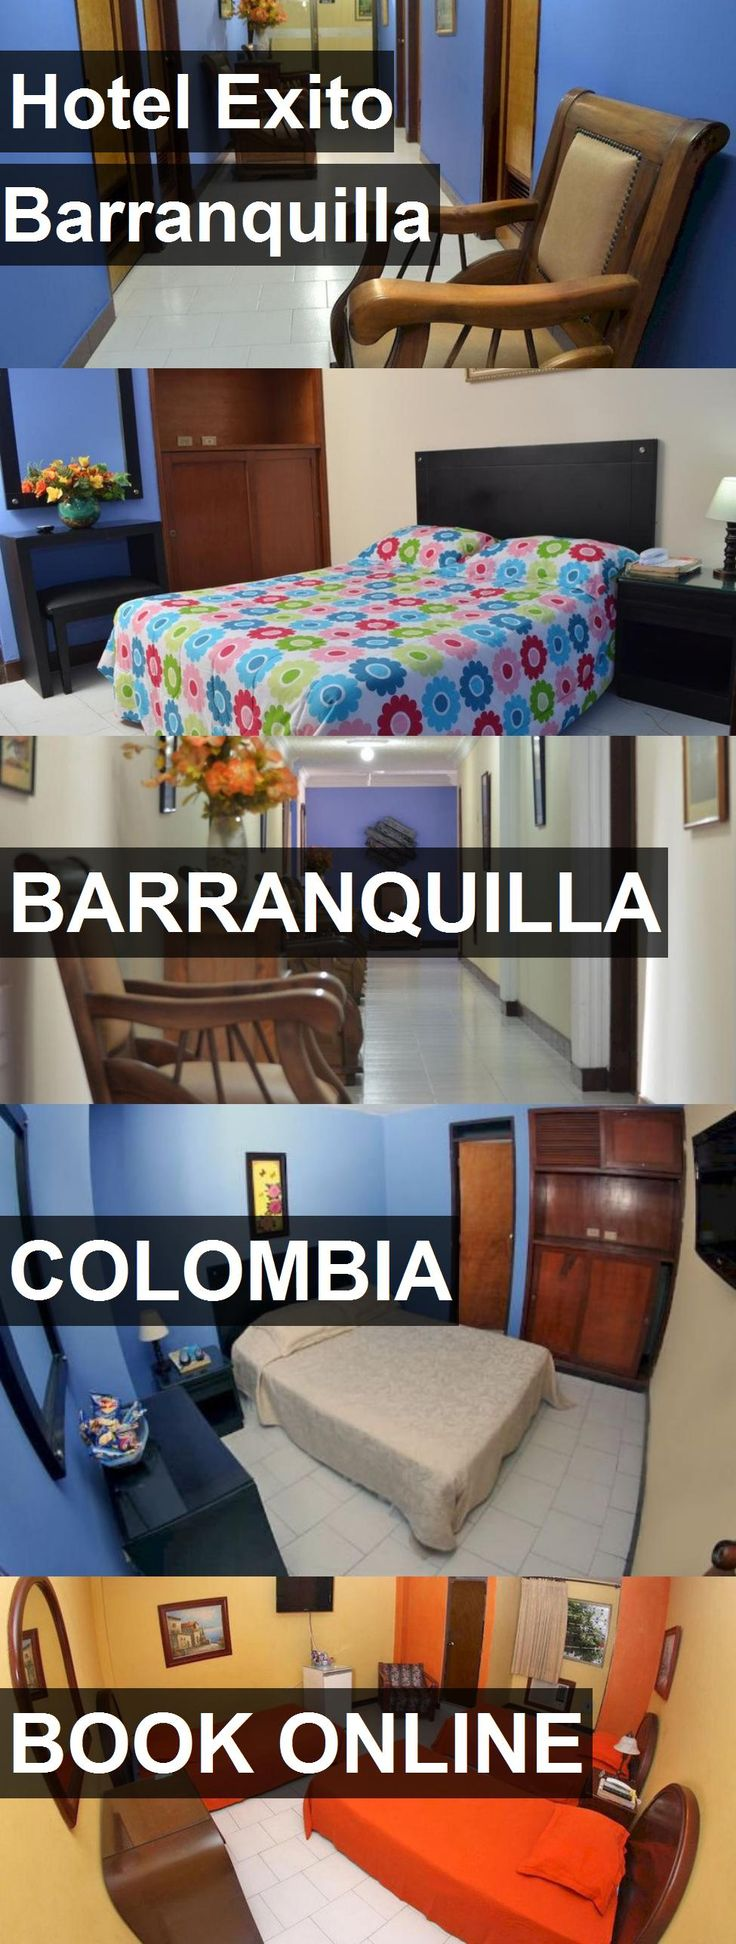 Hotel Exito Barranquilla in Barranquilla, Colombia. For more information, photos, reviews and best prices please follow the link. #Colombia #Barranquilla #travel #vacation #hotel